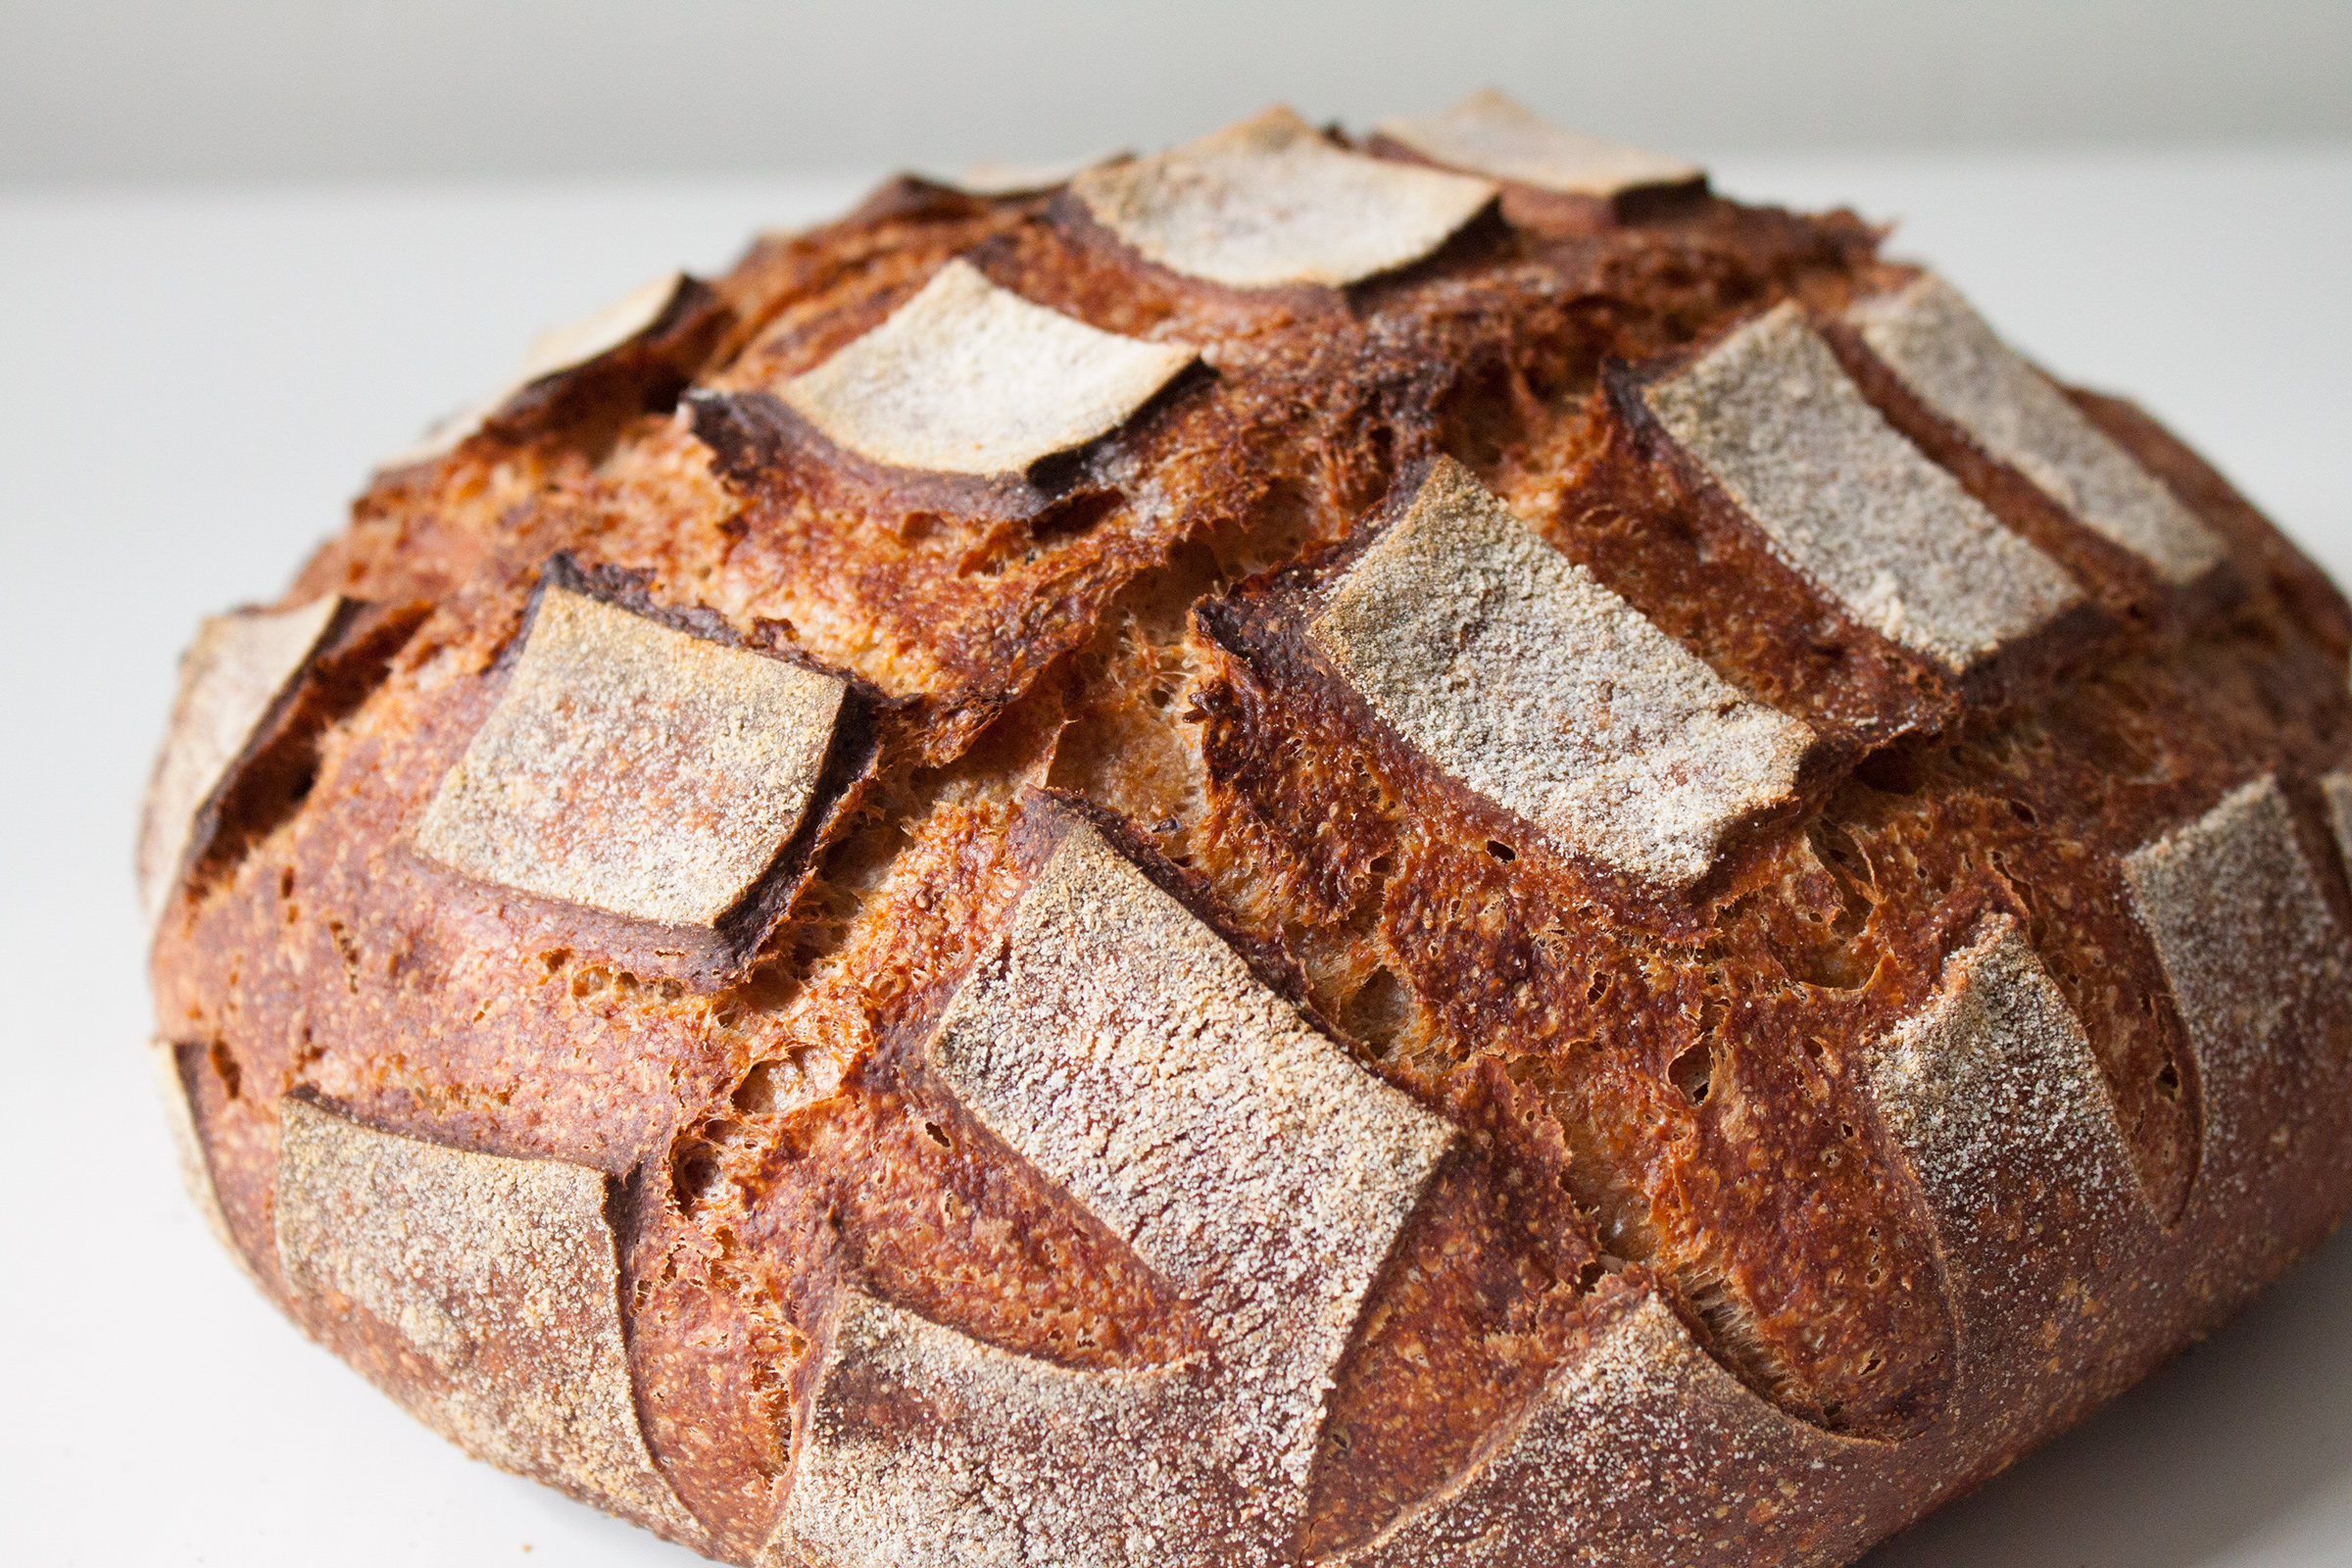 Miche - This is our homage to the noble french style whole wheat bread. It is 100% whole wheat (a mix of red, spelt and rye grain) and is fermented over 48 hours giving it a tender texture and a very strong flavor. A good pairing for a strong wine and a hard cheese.